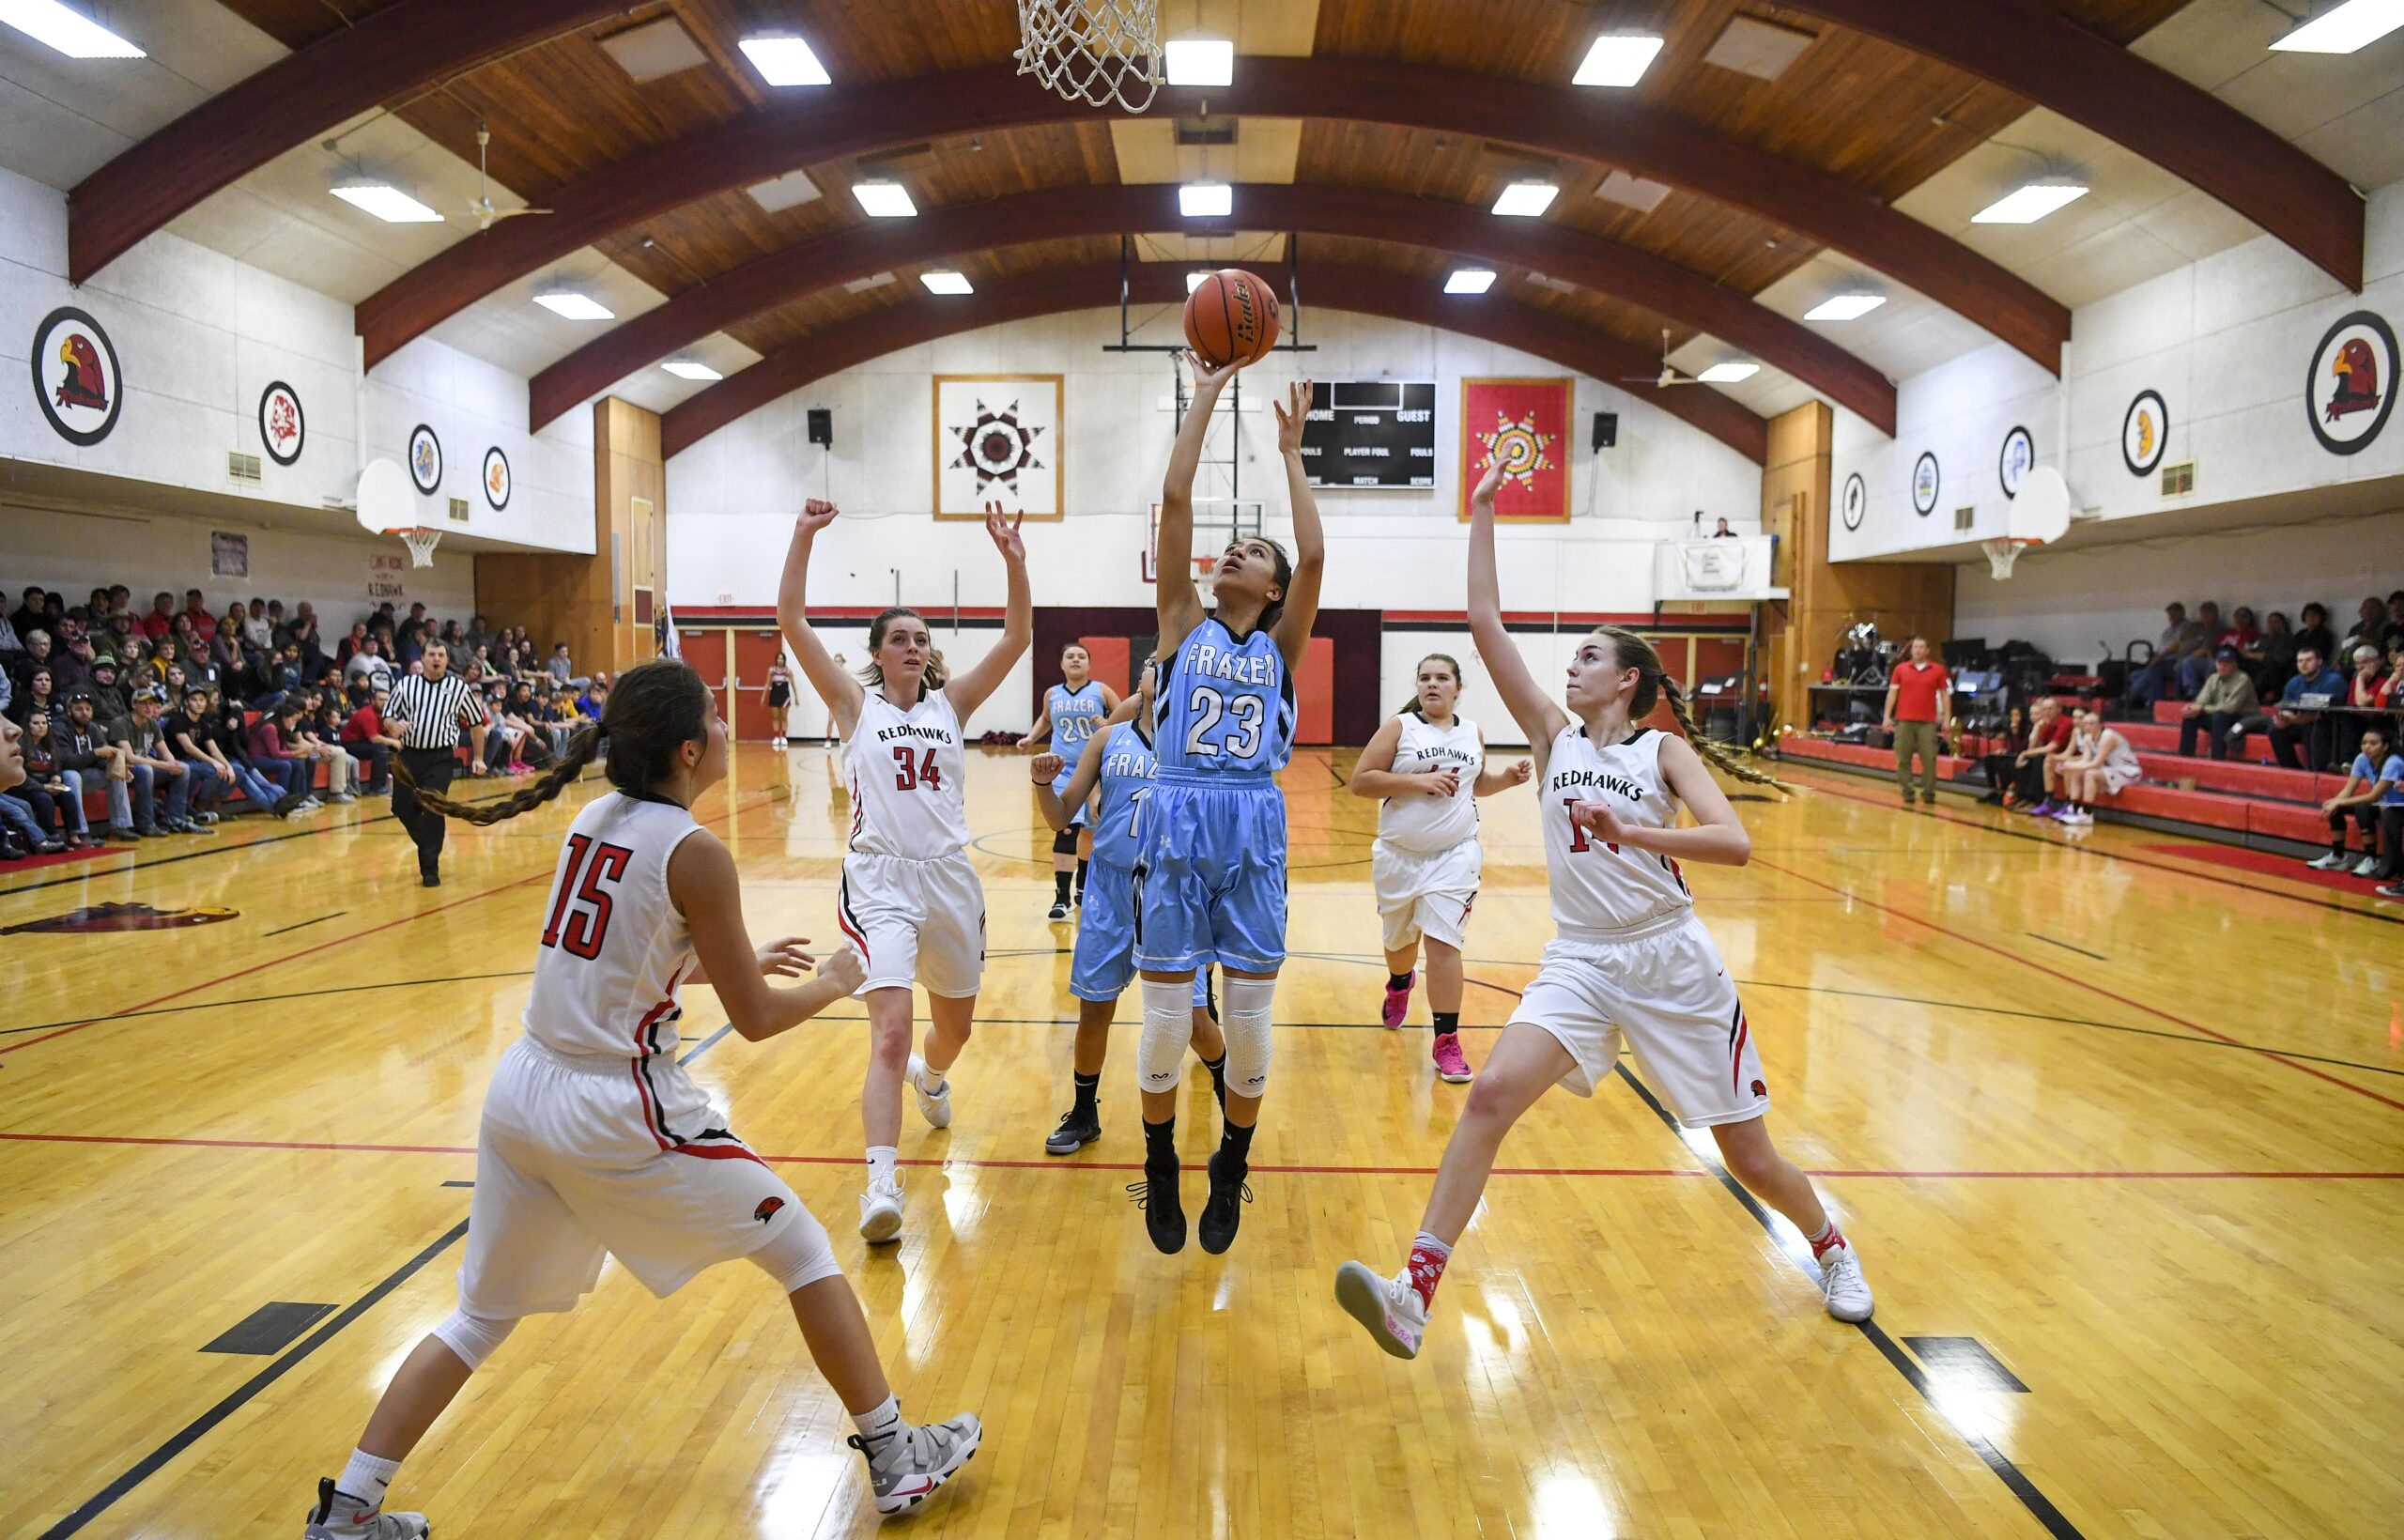 Native American girl's basketball team playing in a basketball game